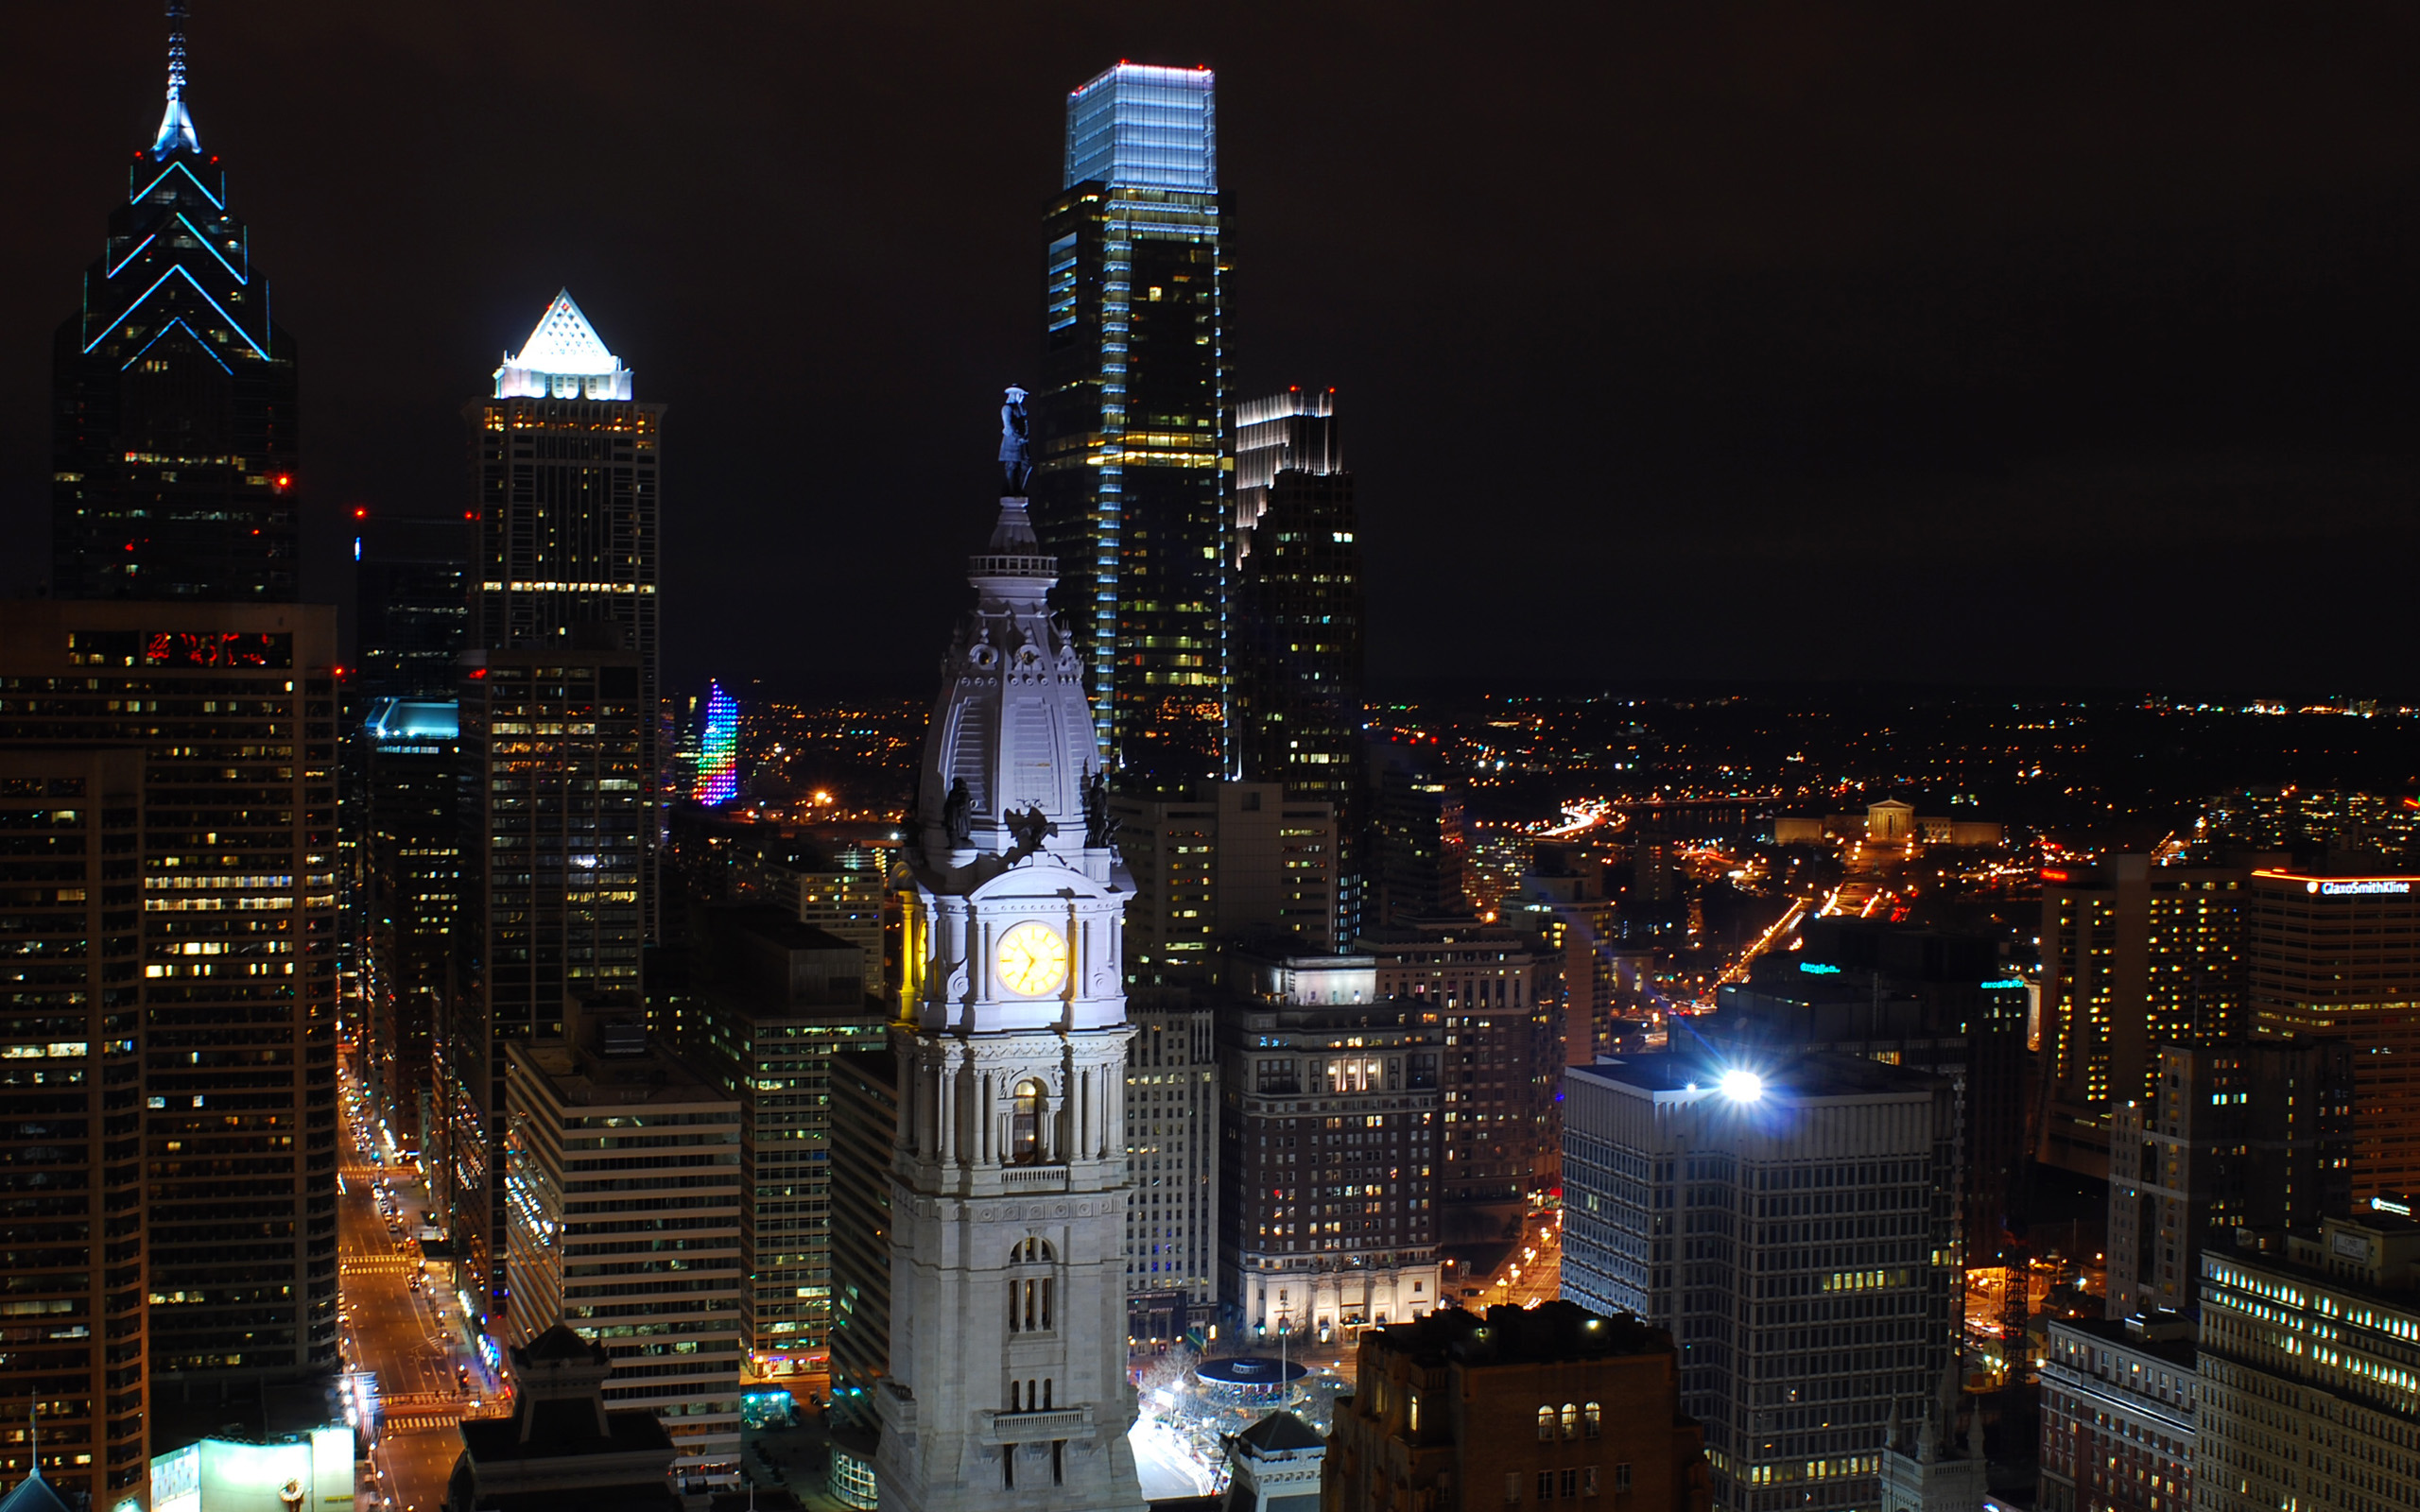 philadelphia-skyline-at-night-wallpaper-4.jpg